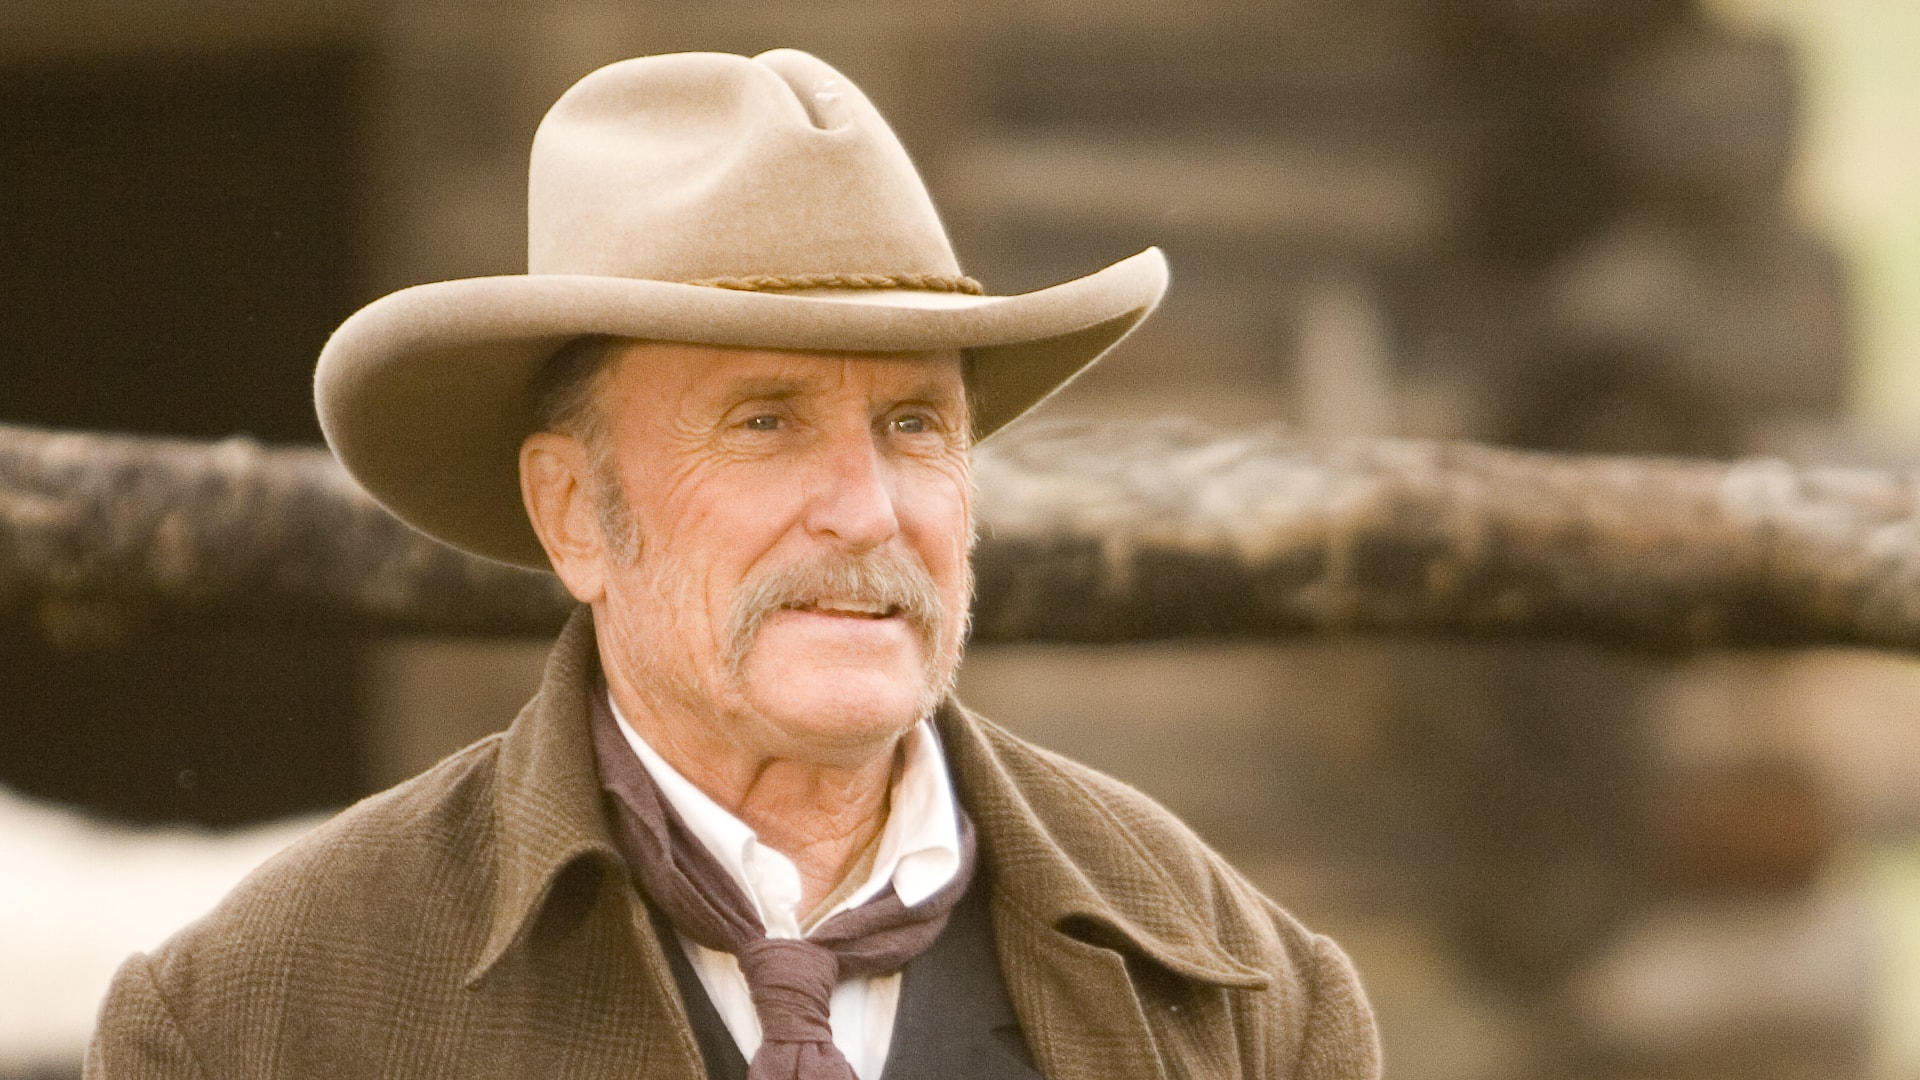 Robert Duvall Widescreen for desktop